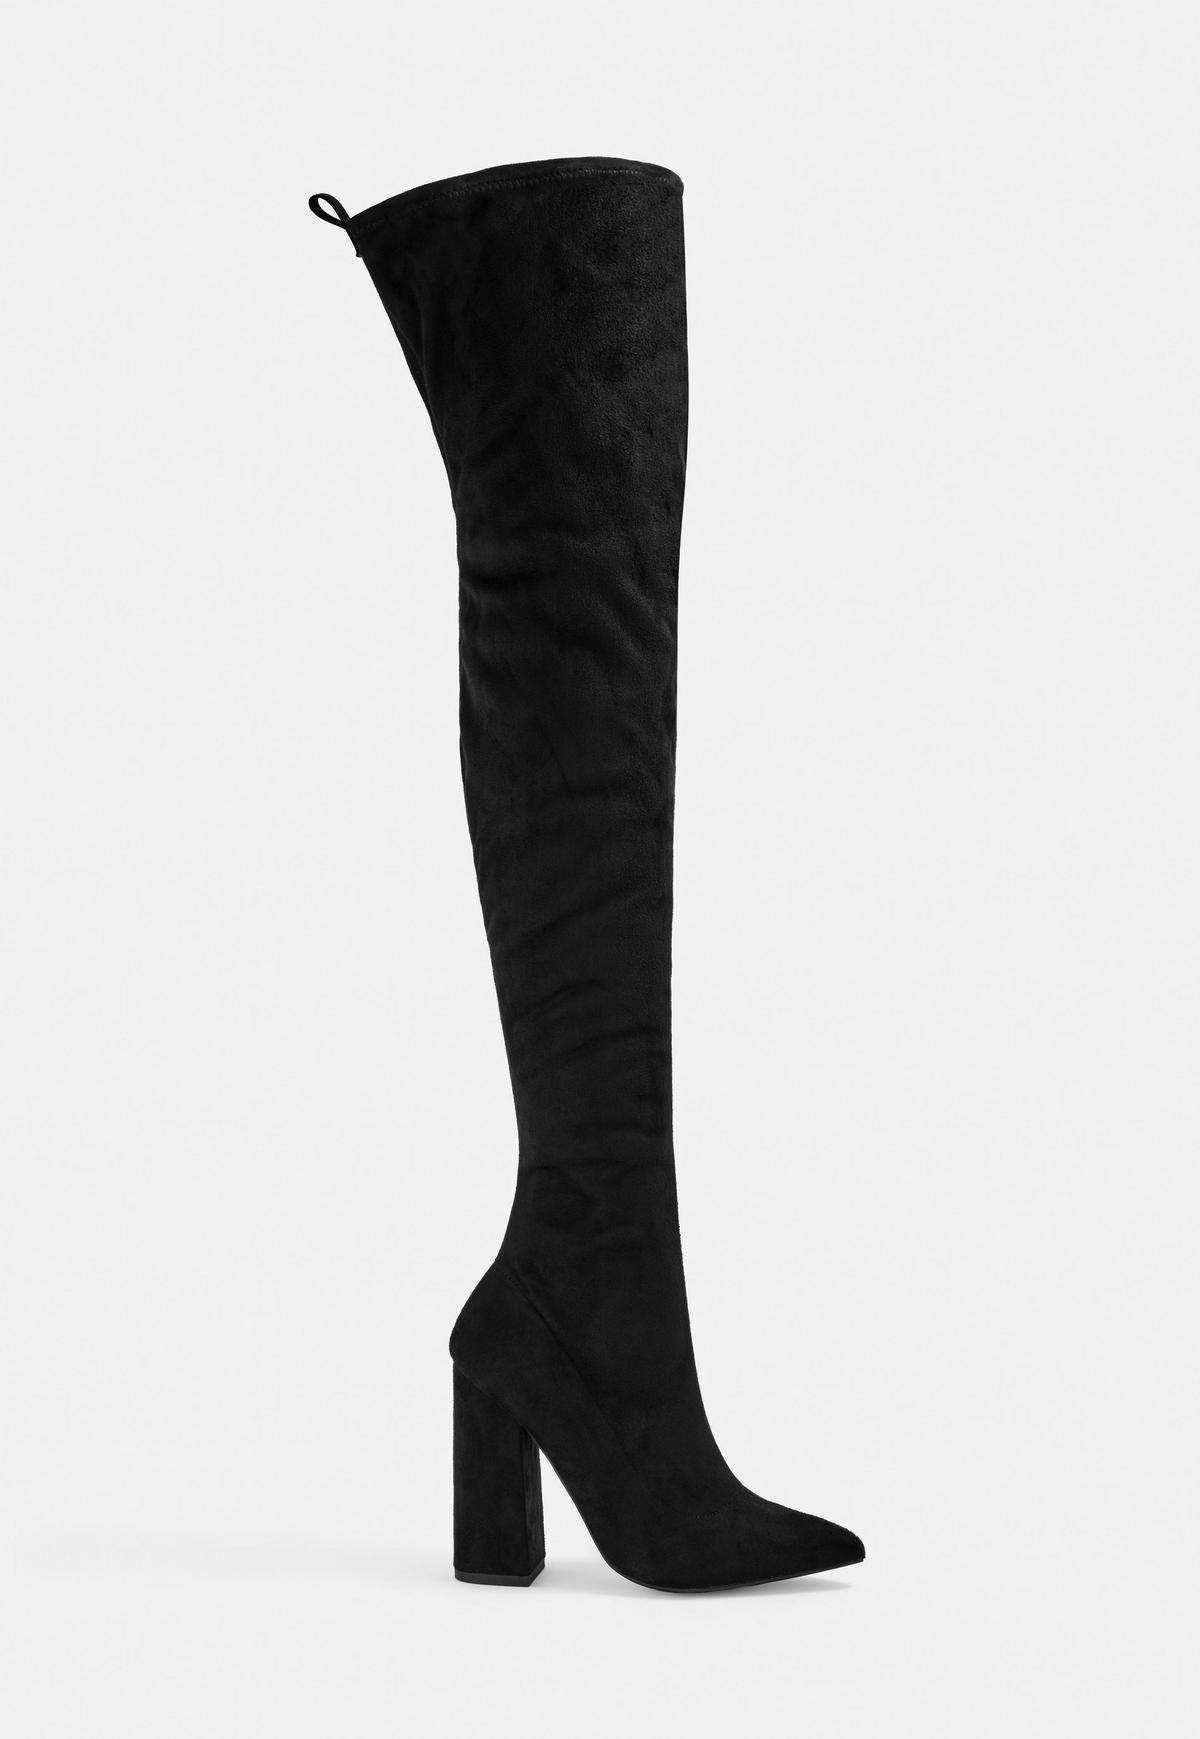 Black Over The Knee Boots High Heel